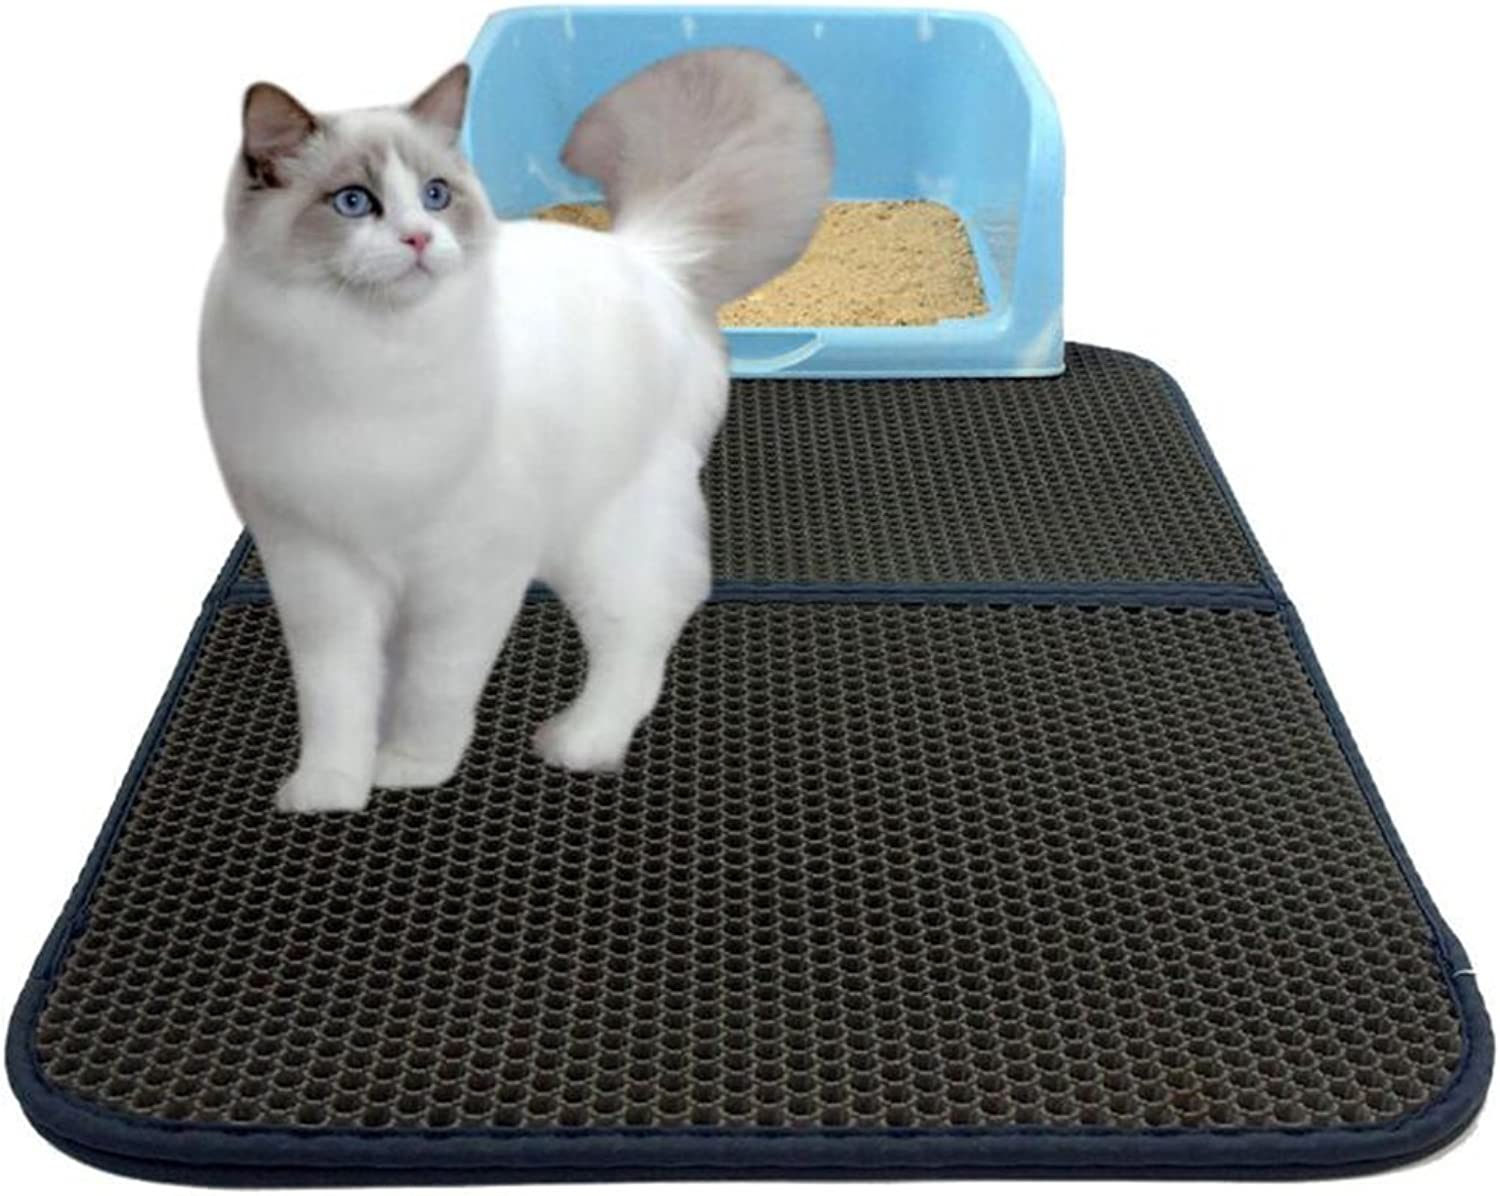 Cat Litter Mat Honeycomb DoubleLayer Waterproof Urine Proof Mat Easy Clean and Floor Carpet Predection Large Size 30Inx22in